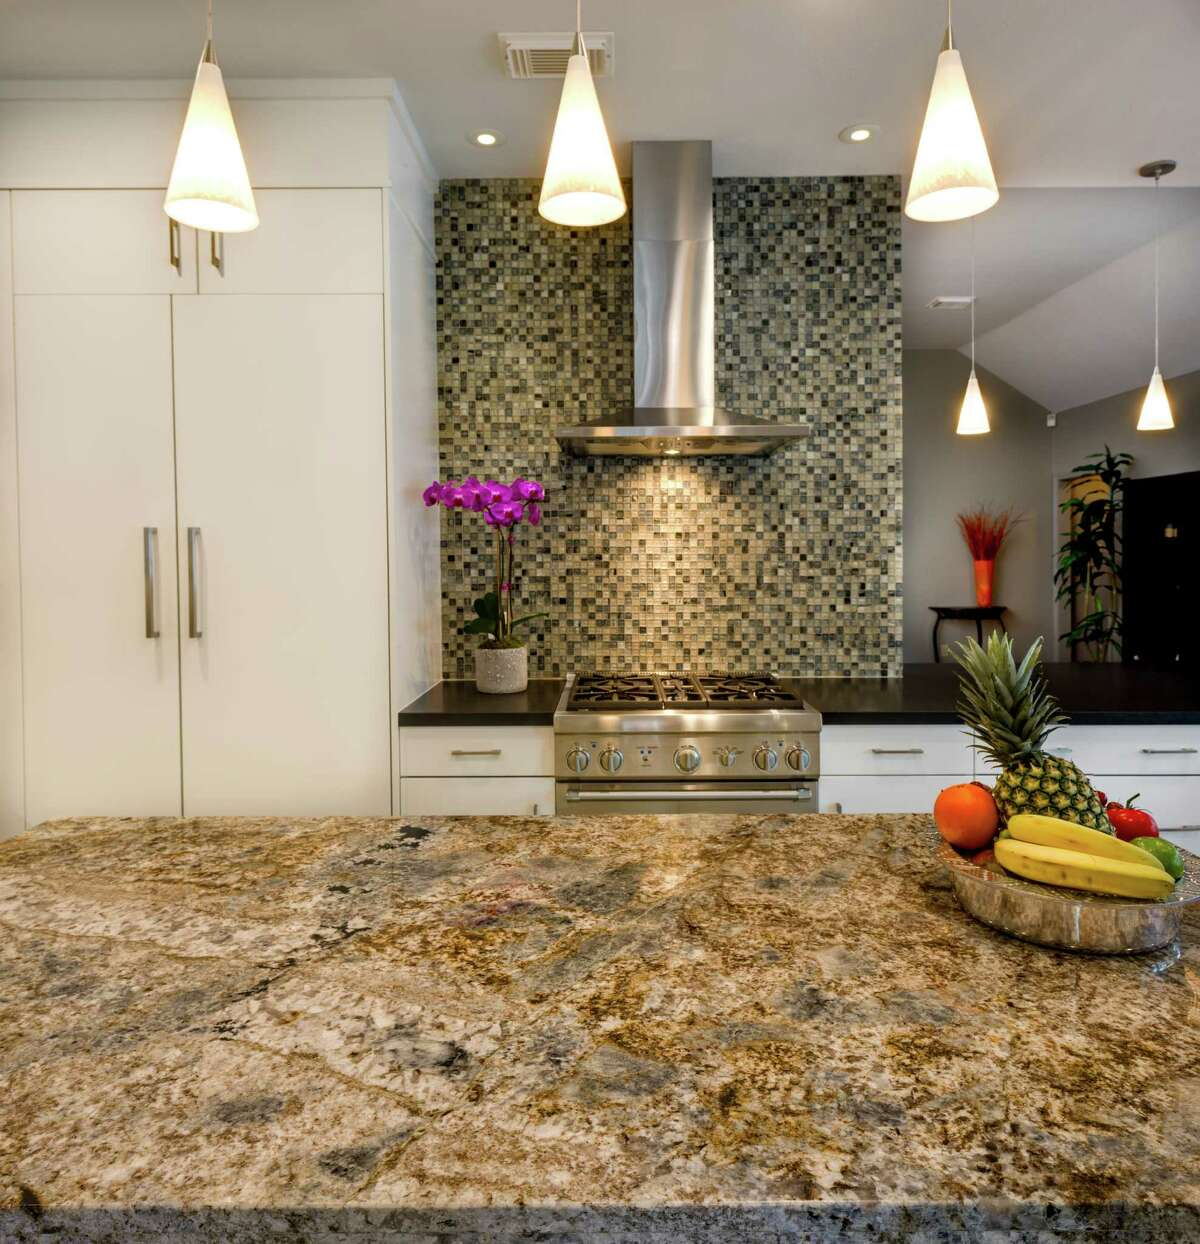 The Menefees' new kitchen island is topped with granite that's a swirl of beige, gray and blue. Coordinating glass mosaic tile lines the wall behind their Thermador range.